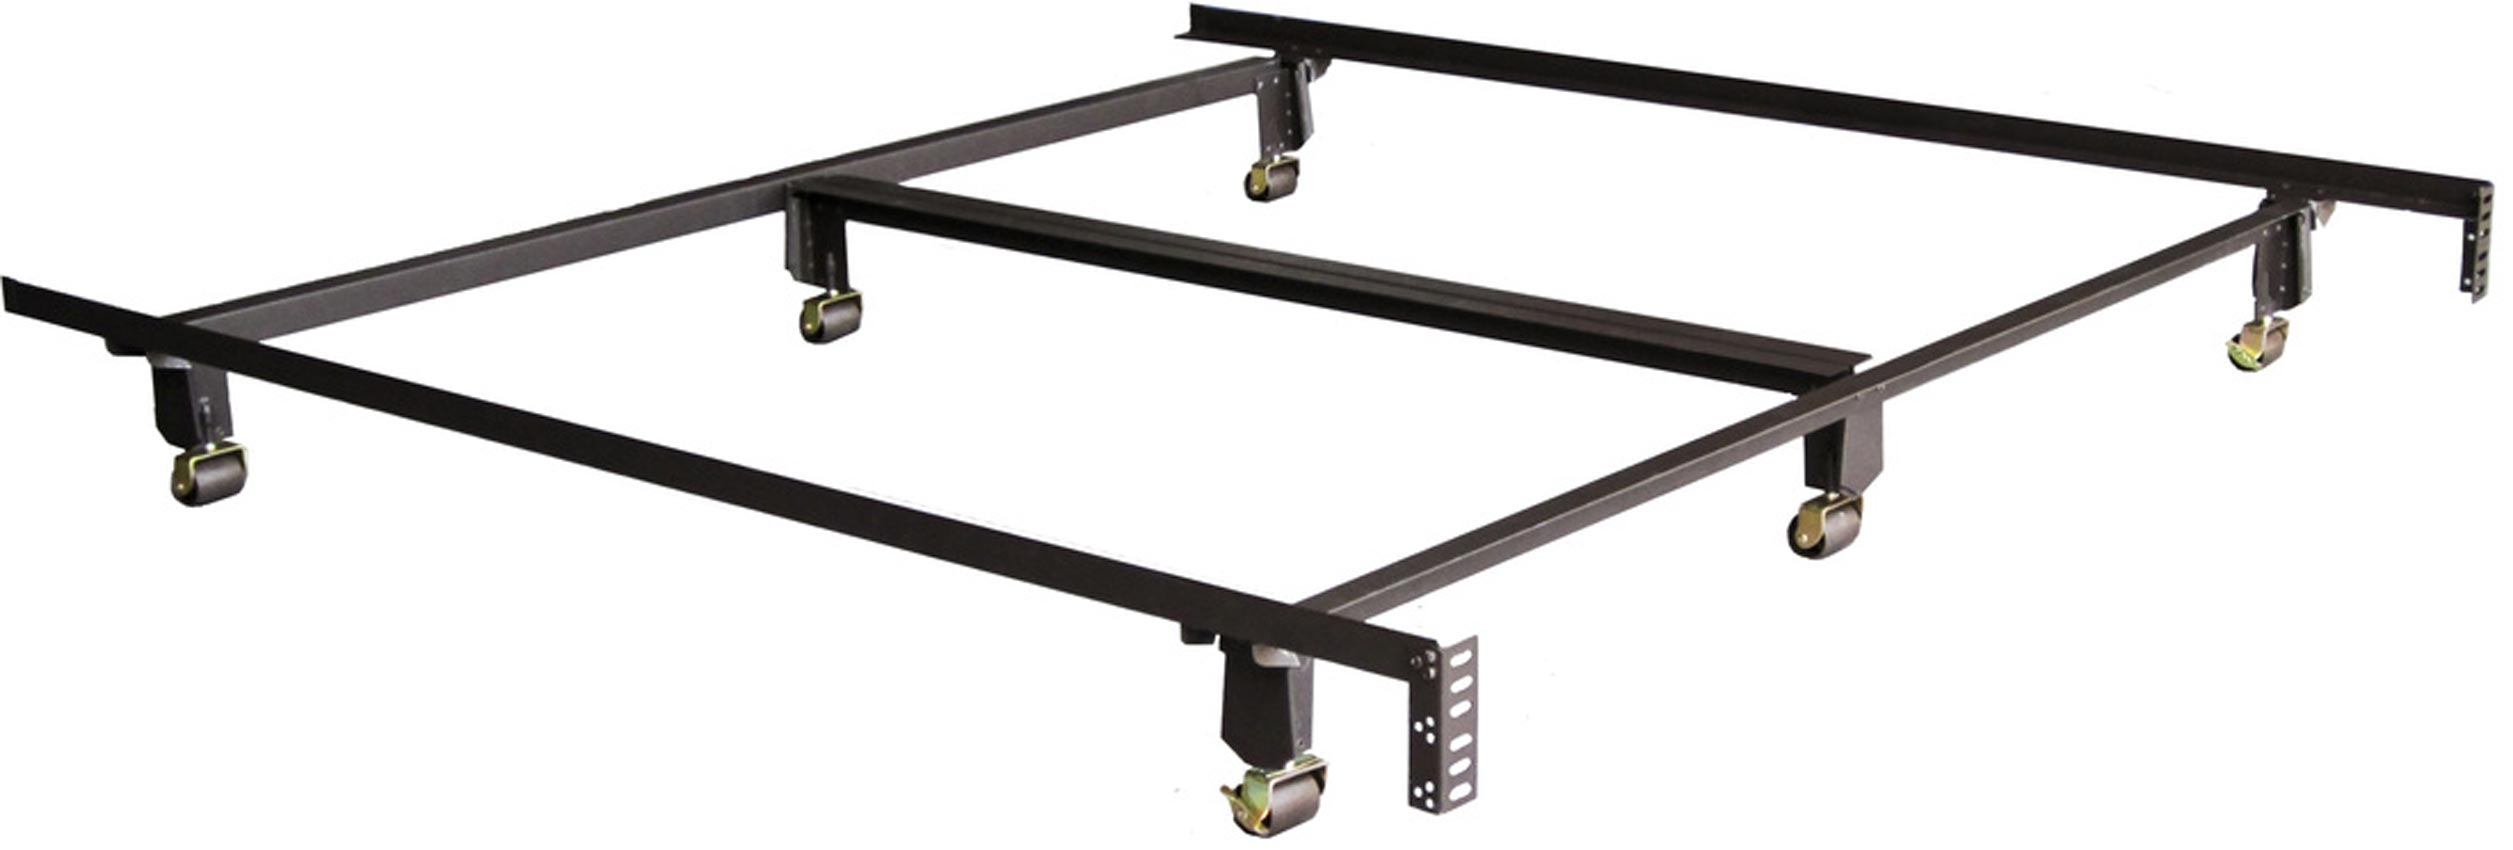 Queen Ez Lock Heavy Duty Frame